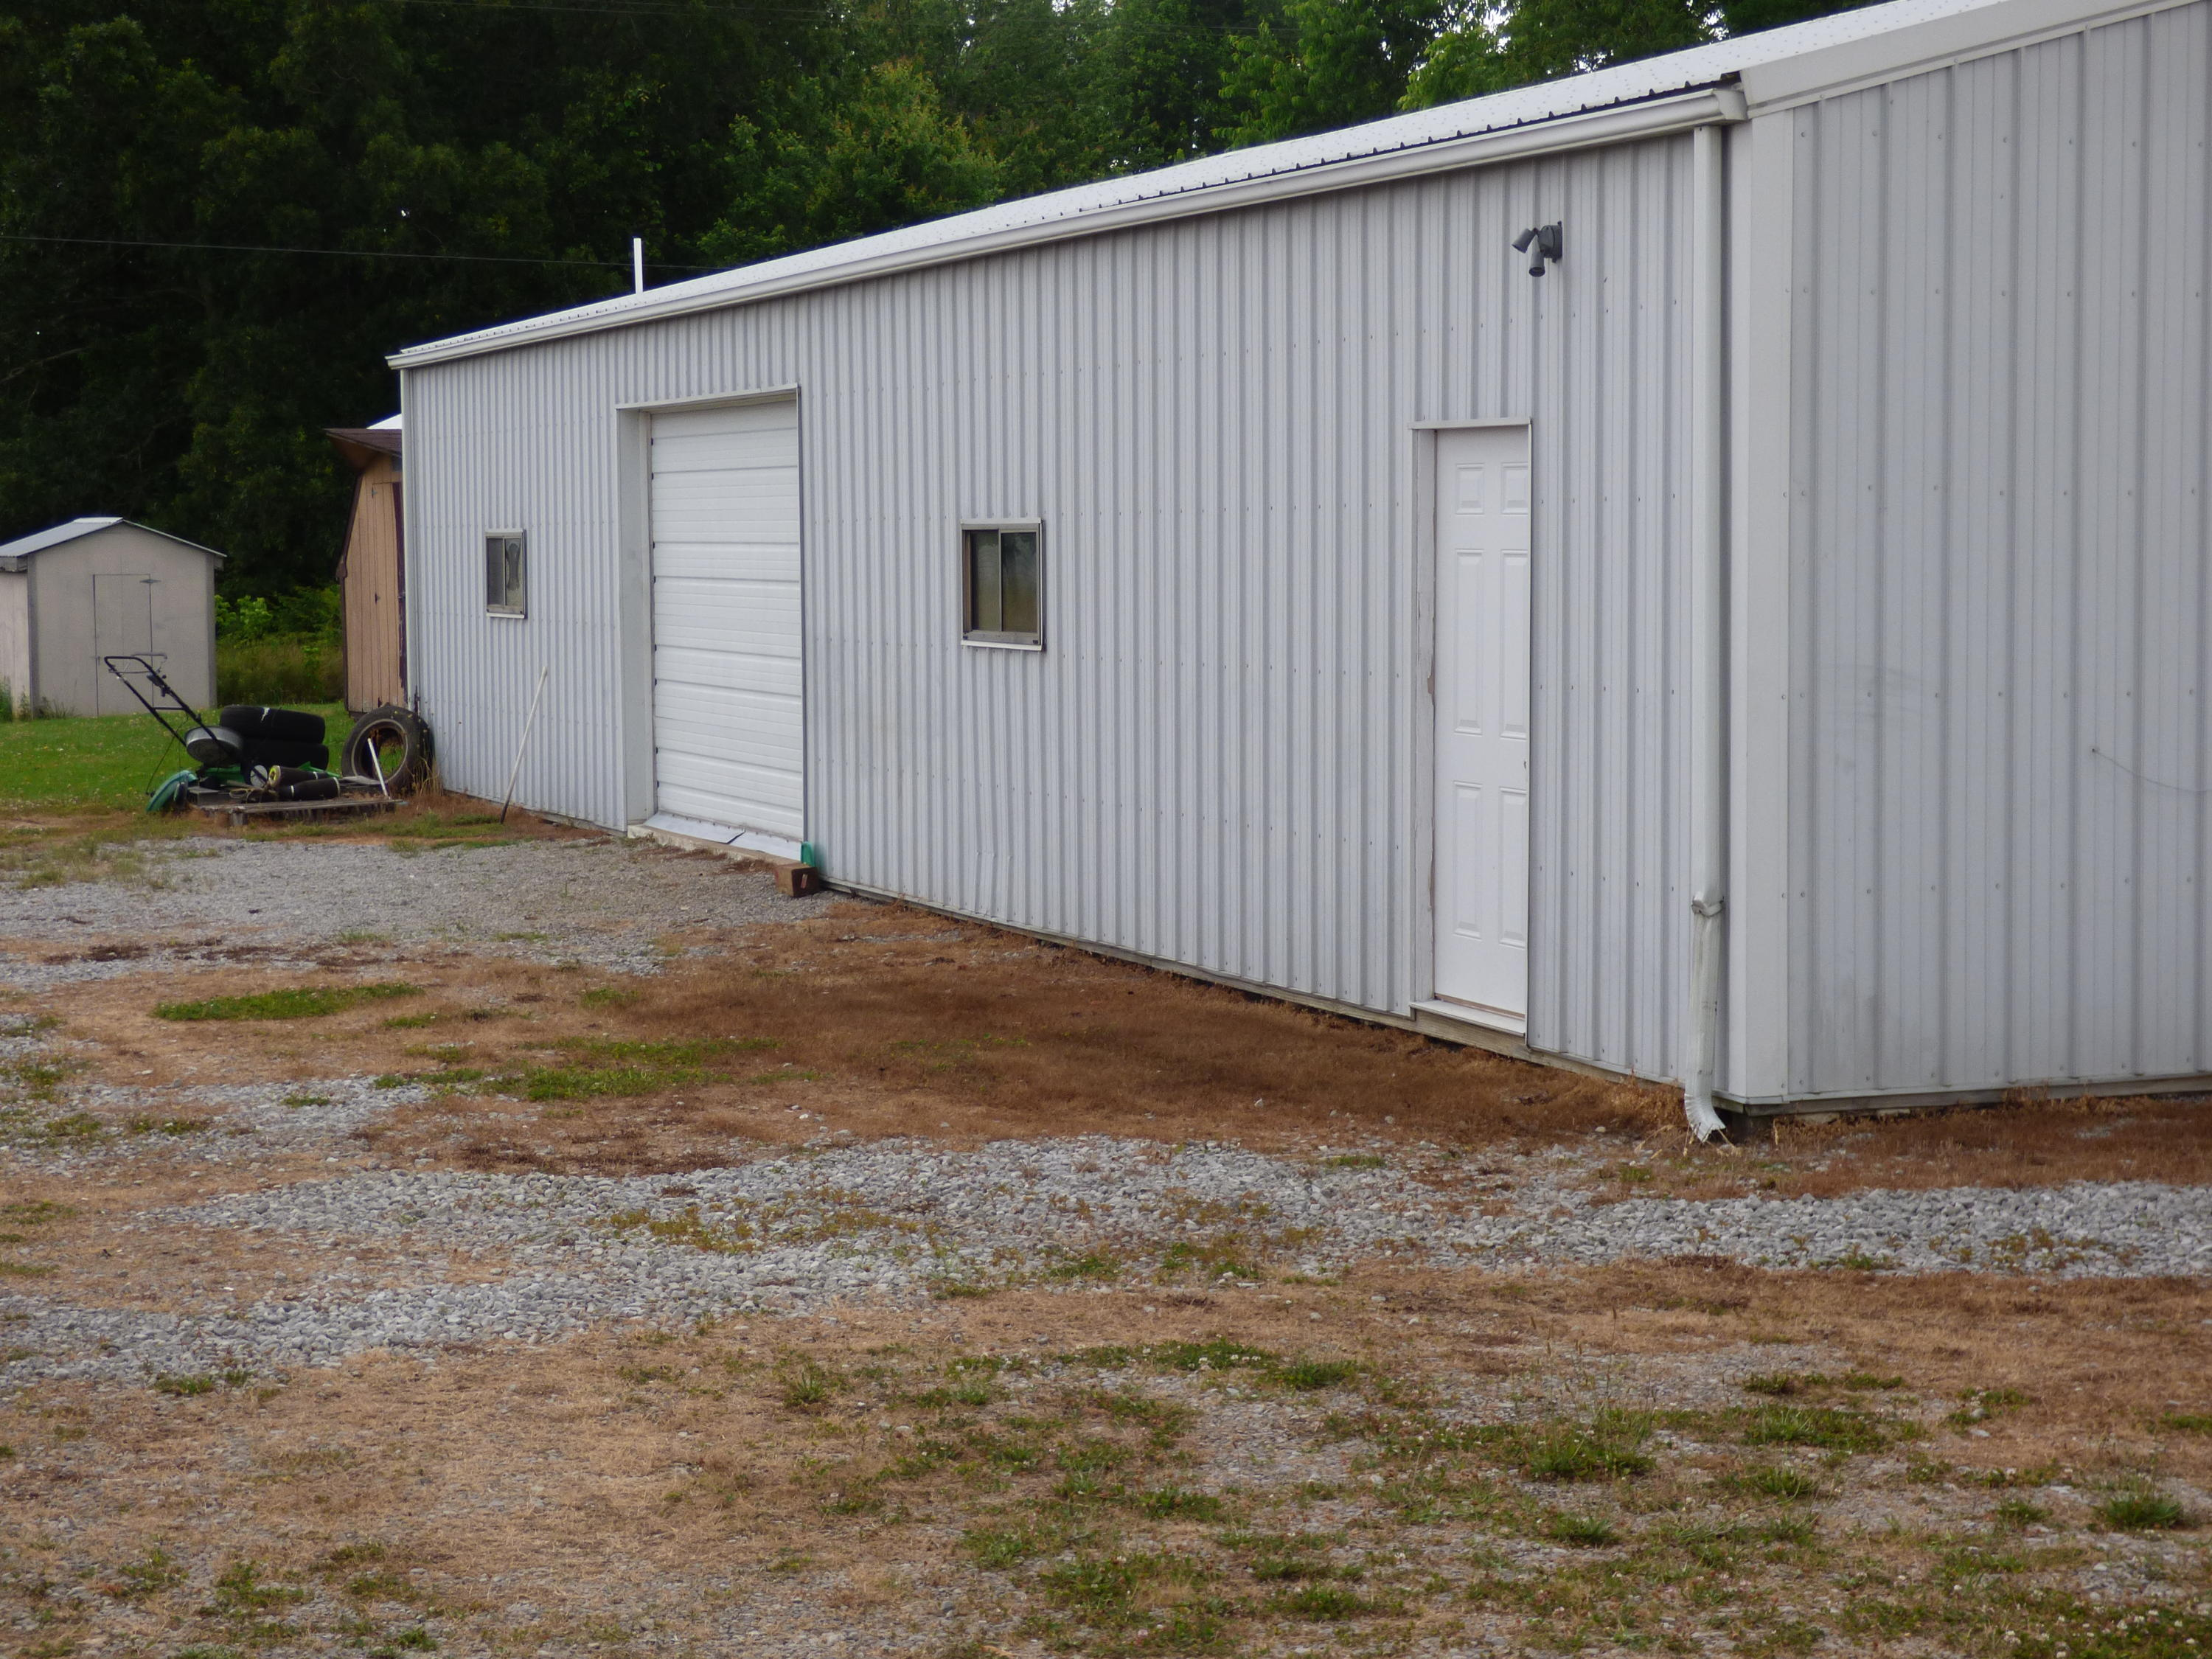 12933 127 Hwy, Crossville, Tennessee 38571, ,Commercial,For Sale,127,1120578